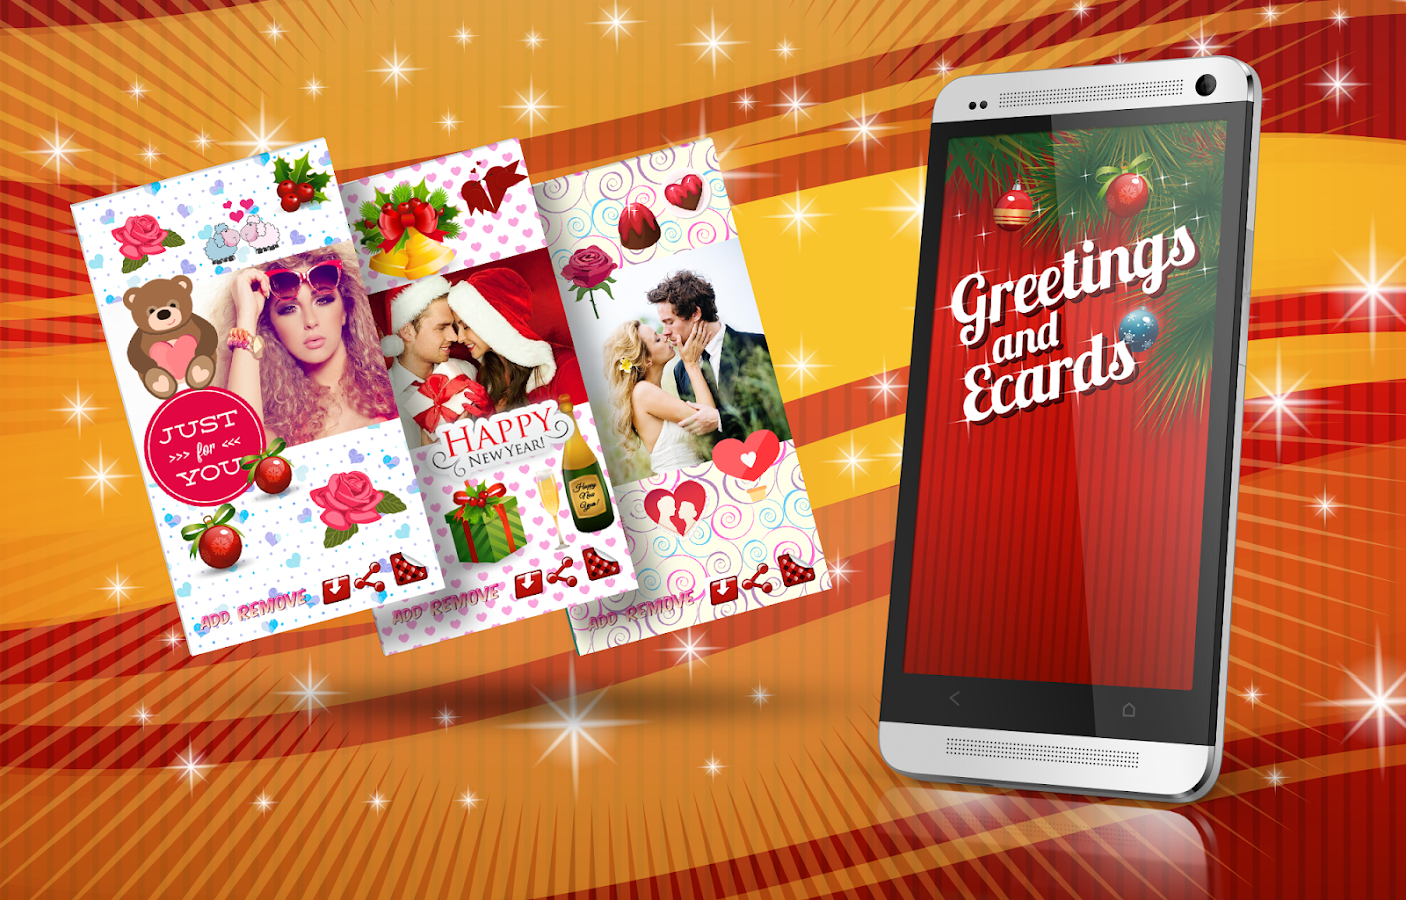 Greeting And Ecards Free Android Apps On Google Play